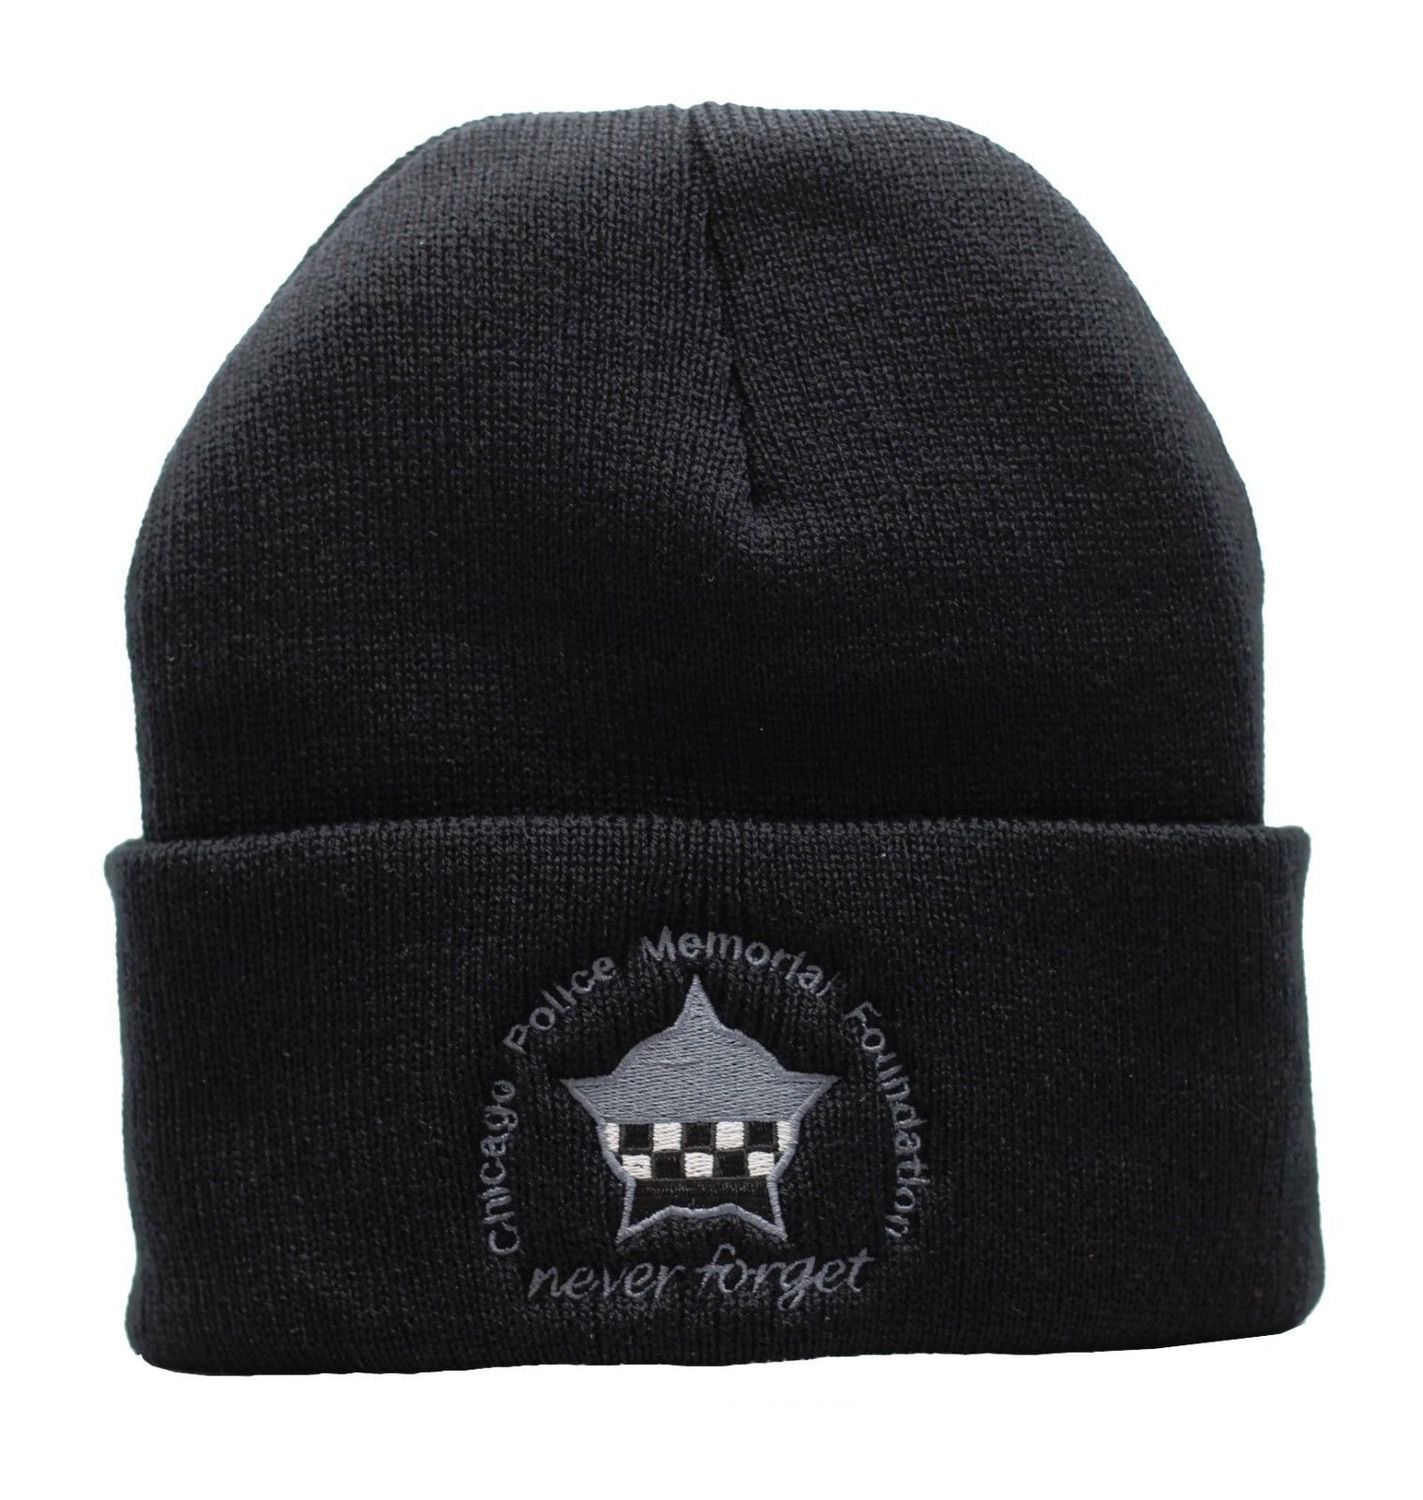 CPD Memorial Never Forget Sub-dued Black Cuffed Knit Cap